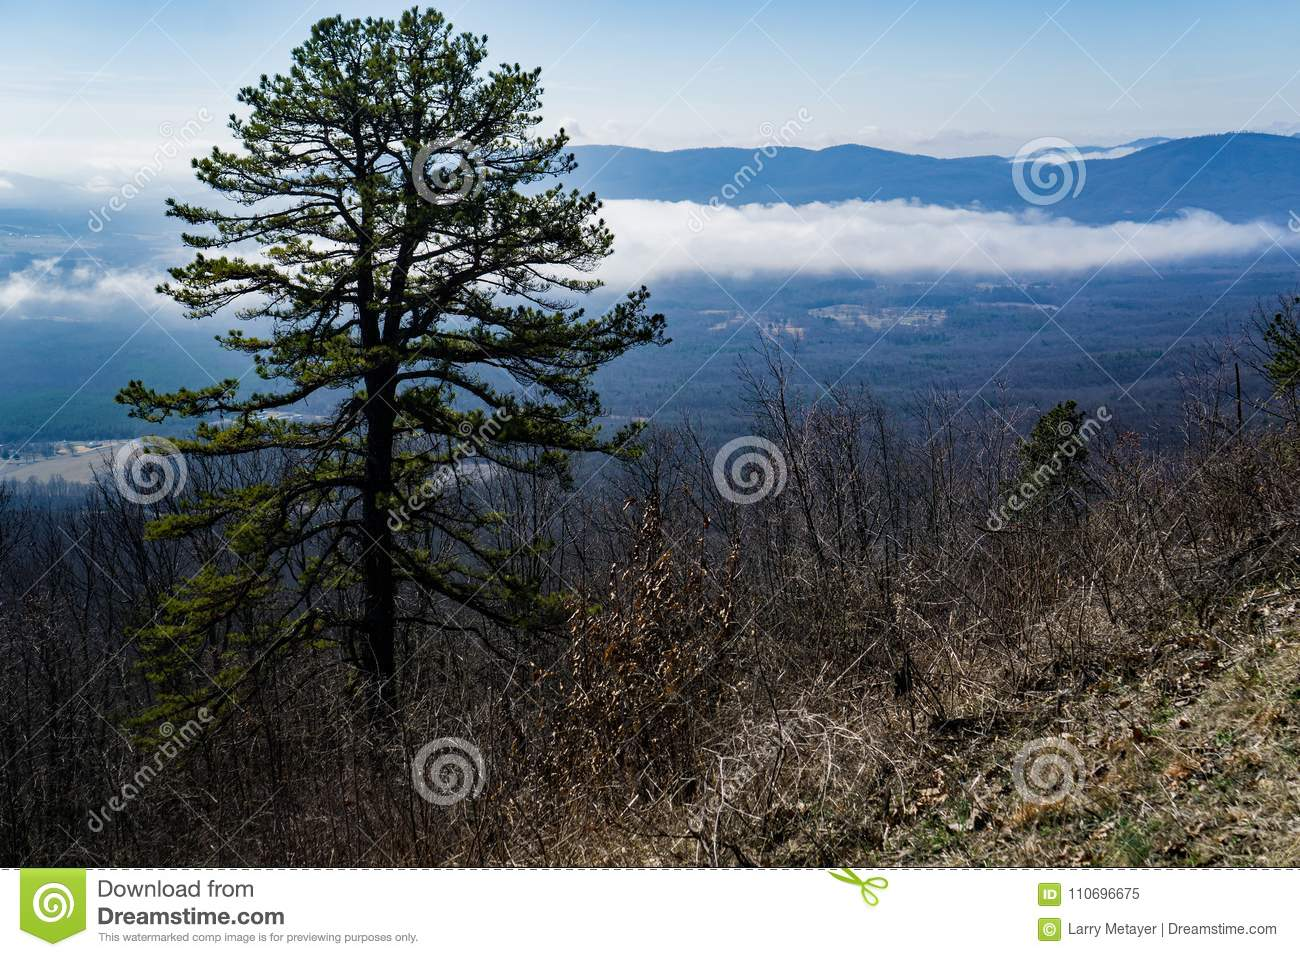 View of a Pine Tree and Foggy Valley